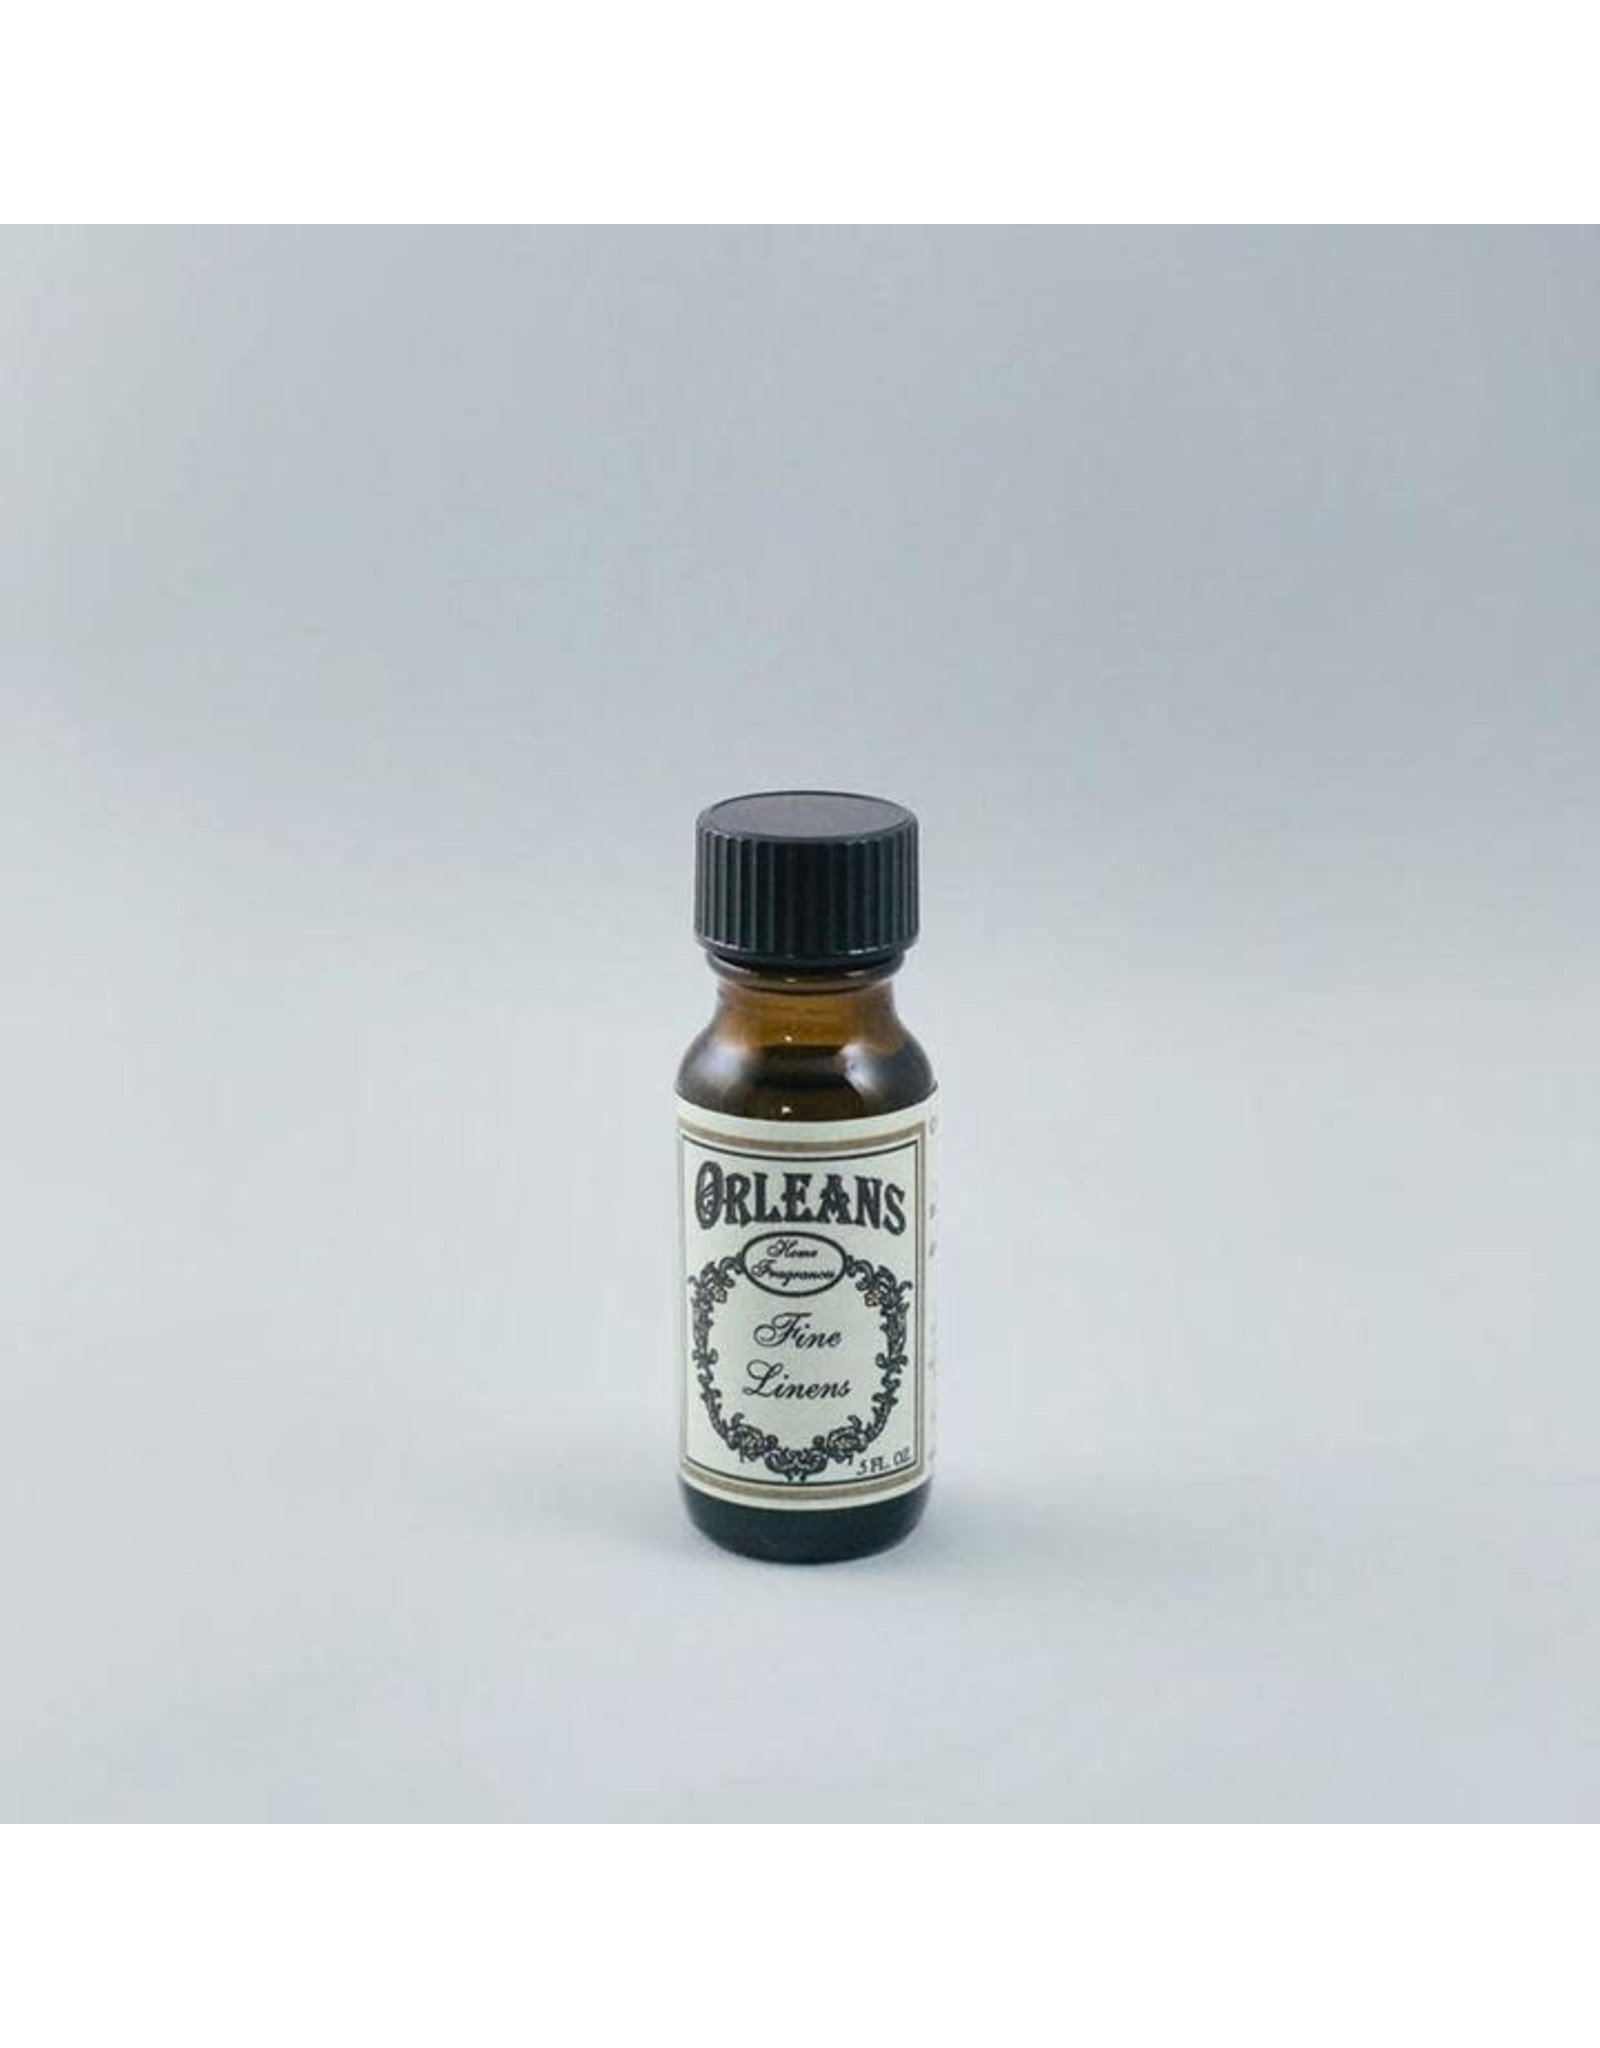 Orleans 1/2 oz. Oil Angel